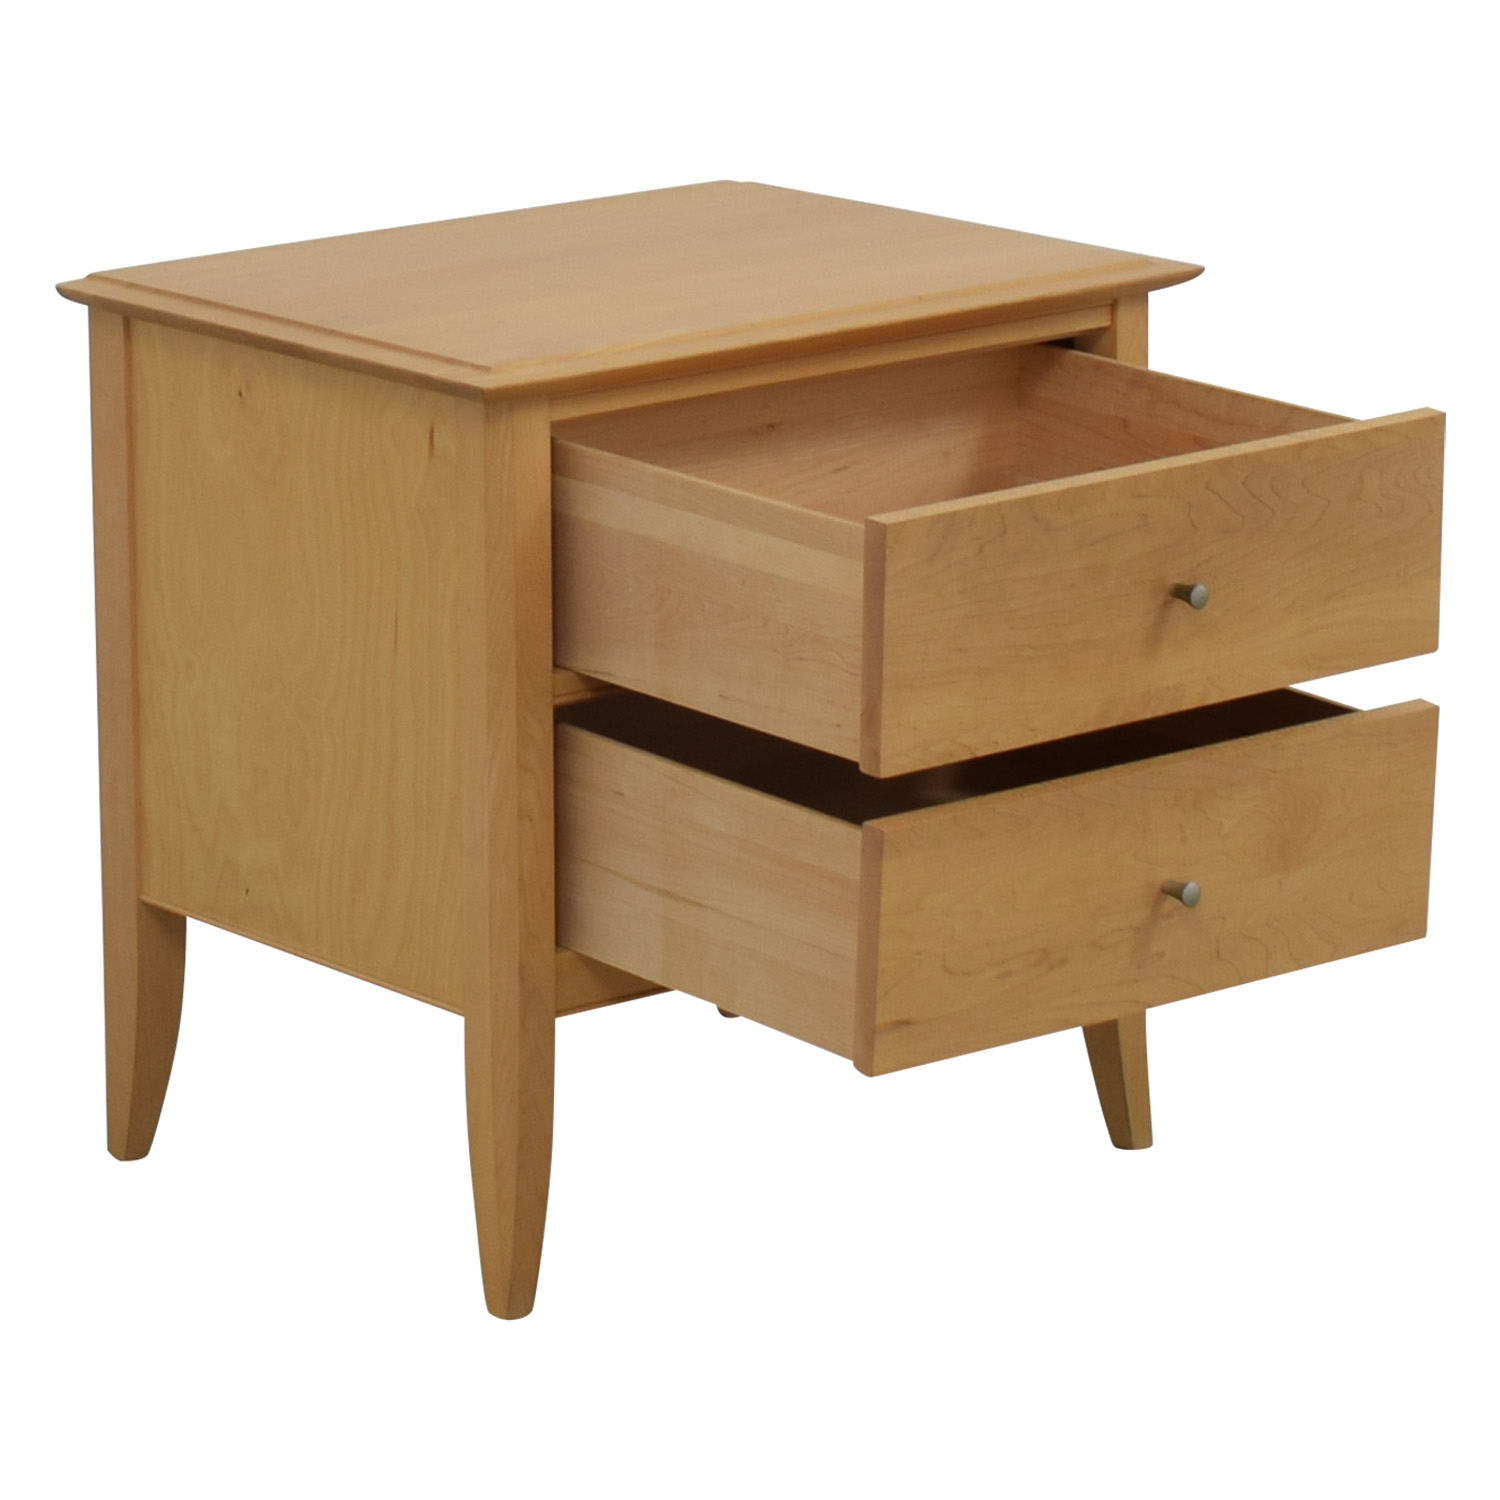 Crate & Barrel Crate & Barrel Natural Two-Drawer Side Table nyc